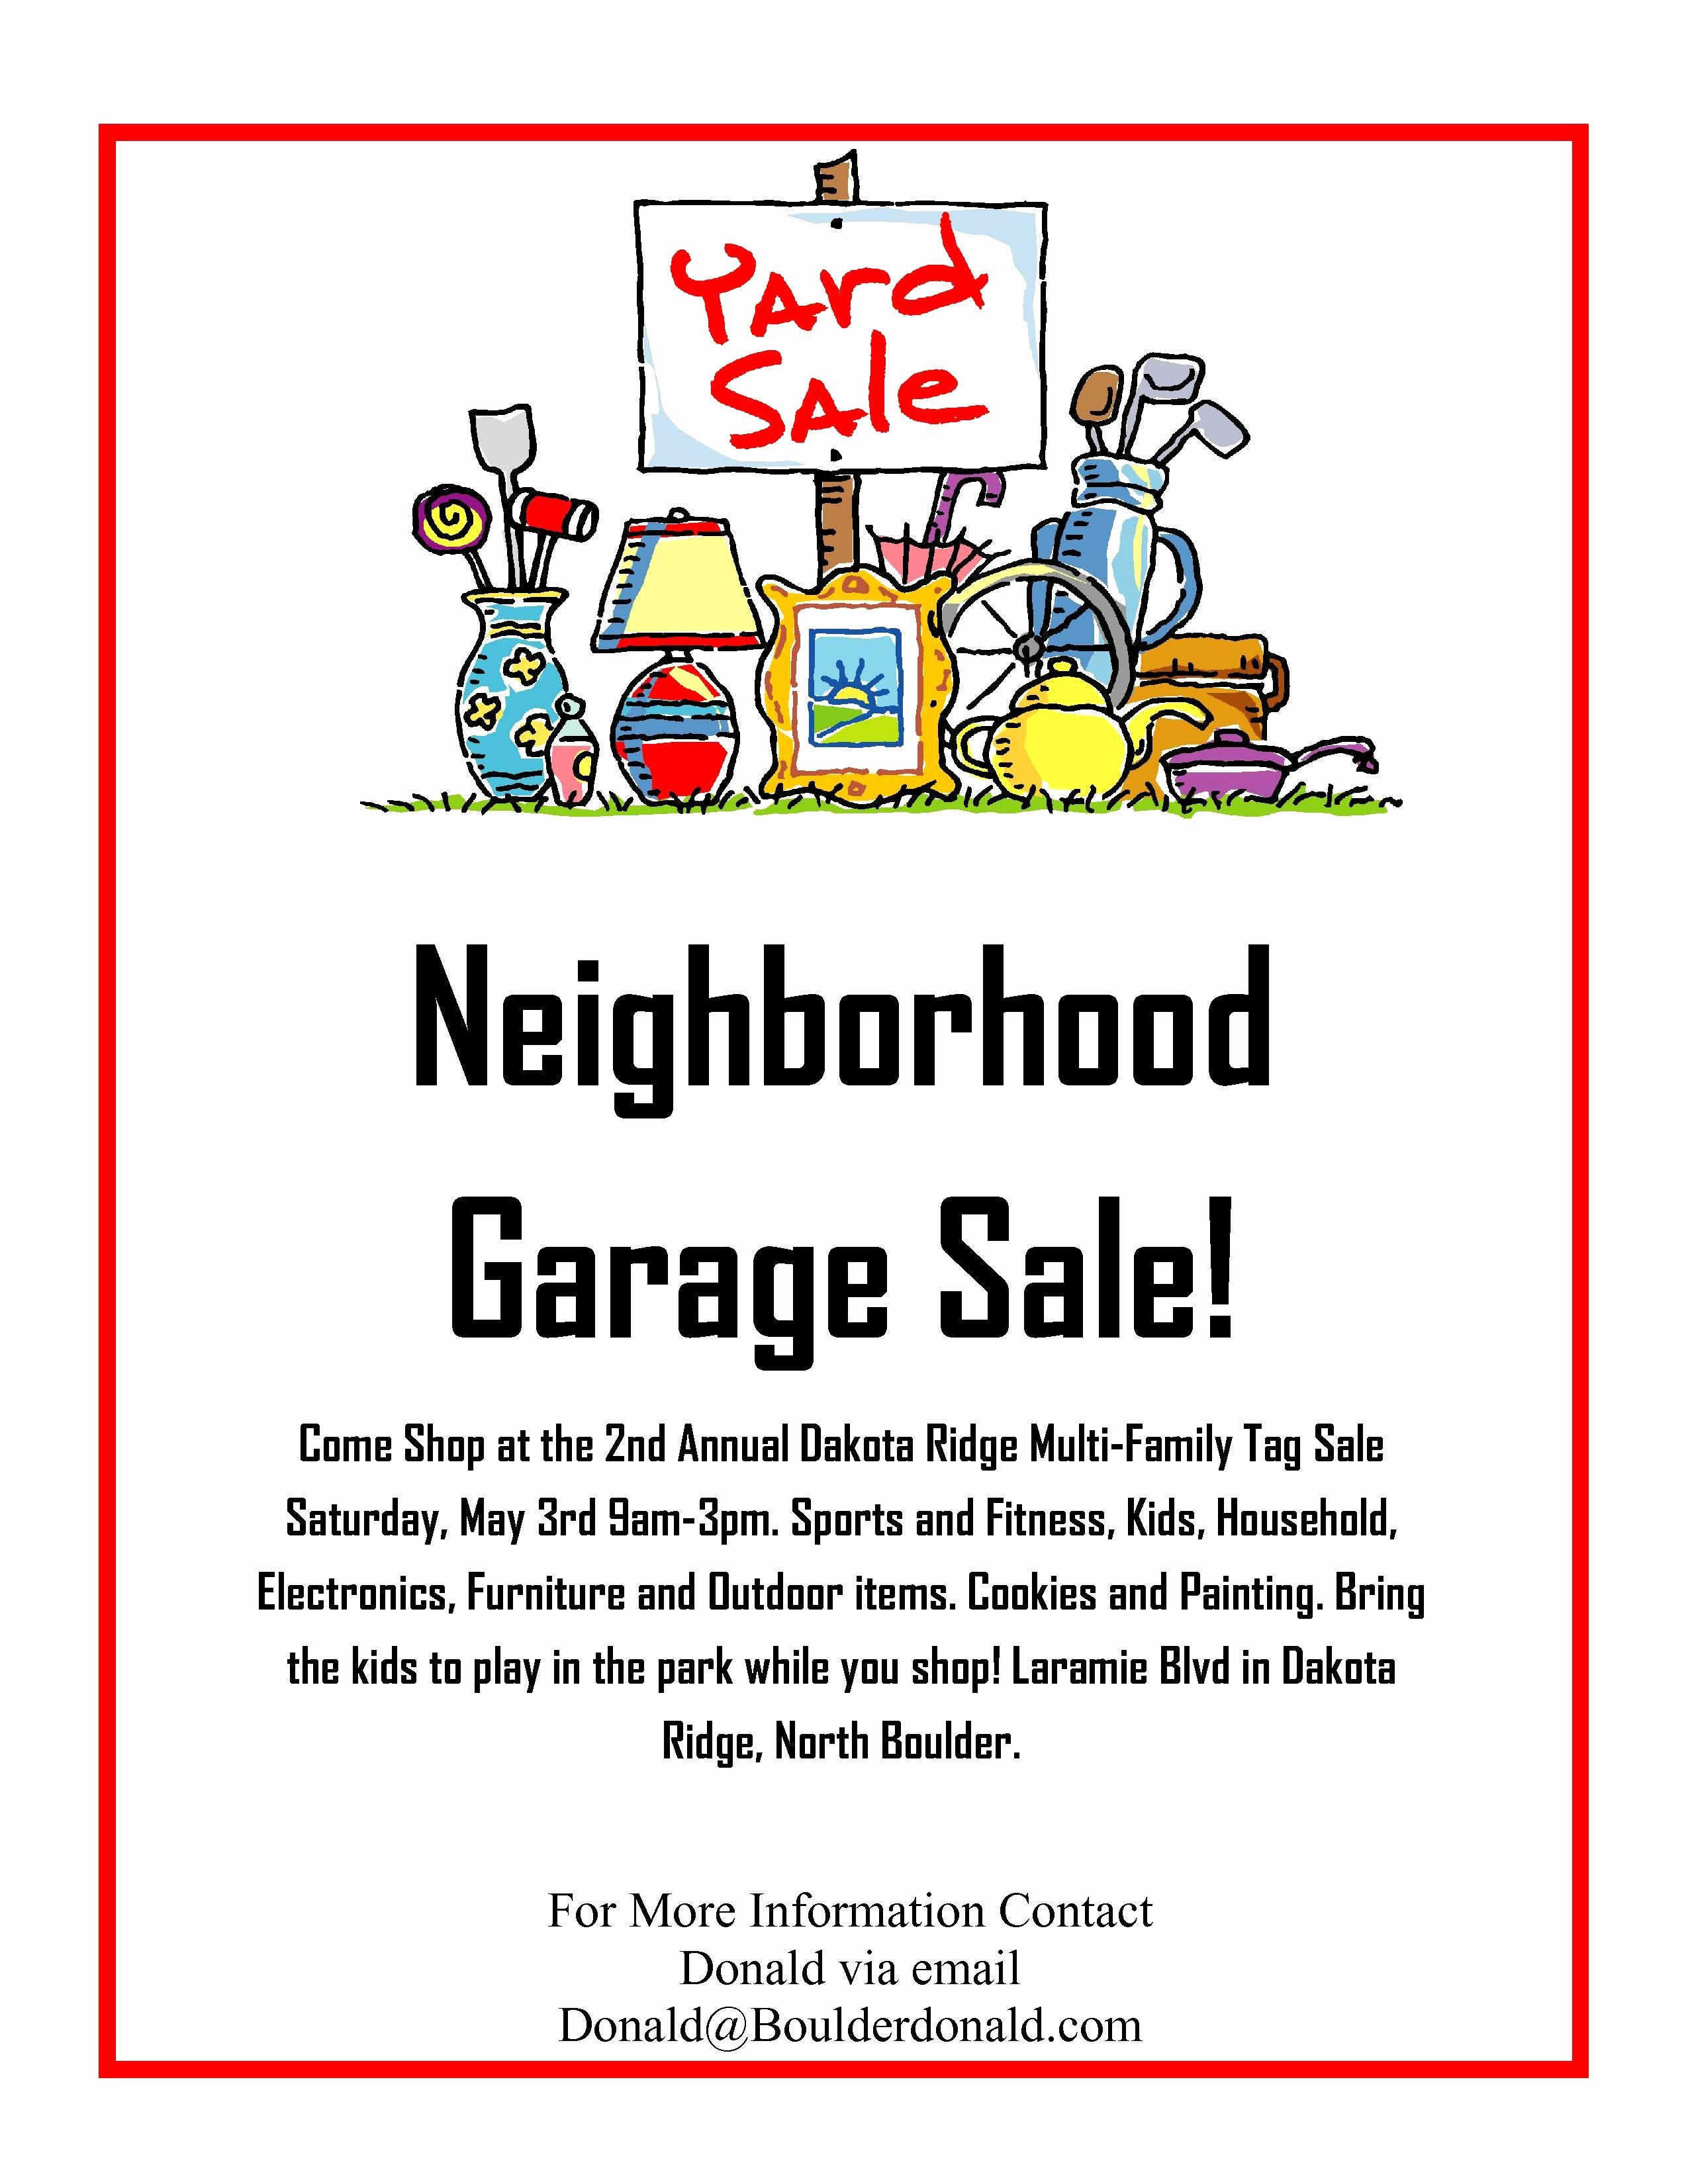 Sales Flyer Template Word Best Of Dakota Ridge Munity Garage Sale May 3rd 2014